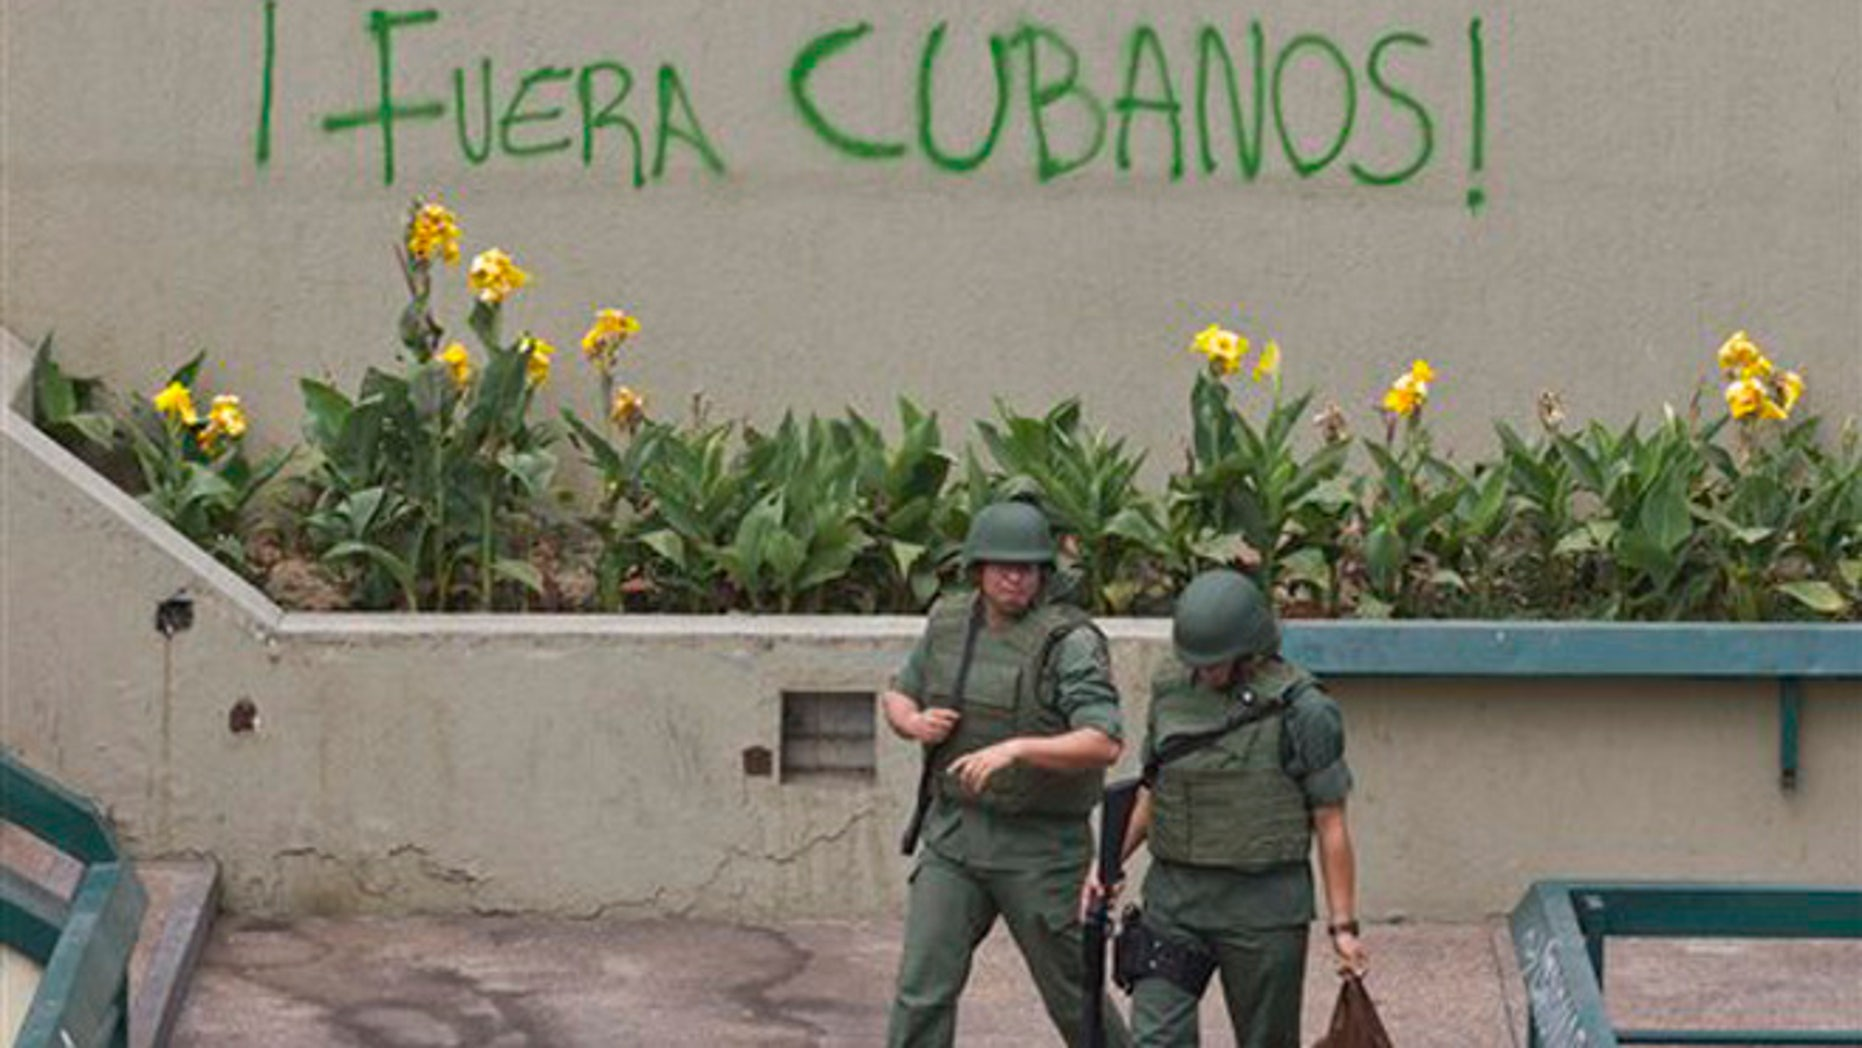 "Bolivarian National Guard officers patrol Plaza Altamira after taking control of it, in Caracas, Venezuela, Monday, March 17, 2014. Government security forces took control of a Caracas plaza and surrounding neighborhoods Monday morning that had become the center of student-led protests. The graffiti on the wall reads in Spanish ""Cubans Out!"". Clusters of National Guardsmen were a visible presence not only on Plaza Altamira, but along the principal streets extending from it in the municipality of Chacao."